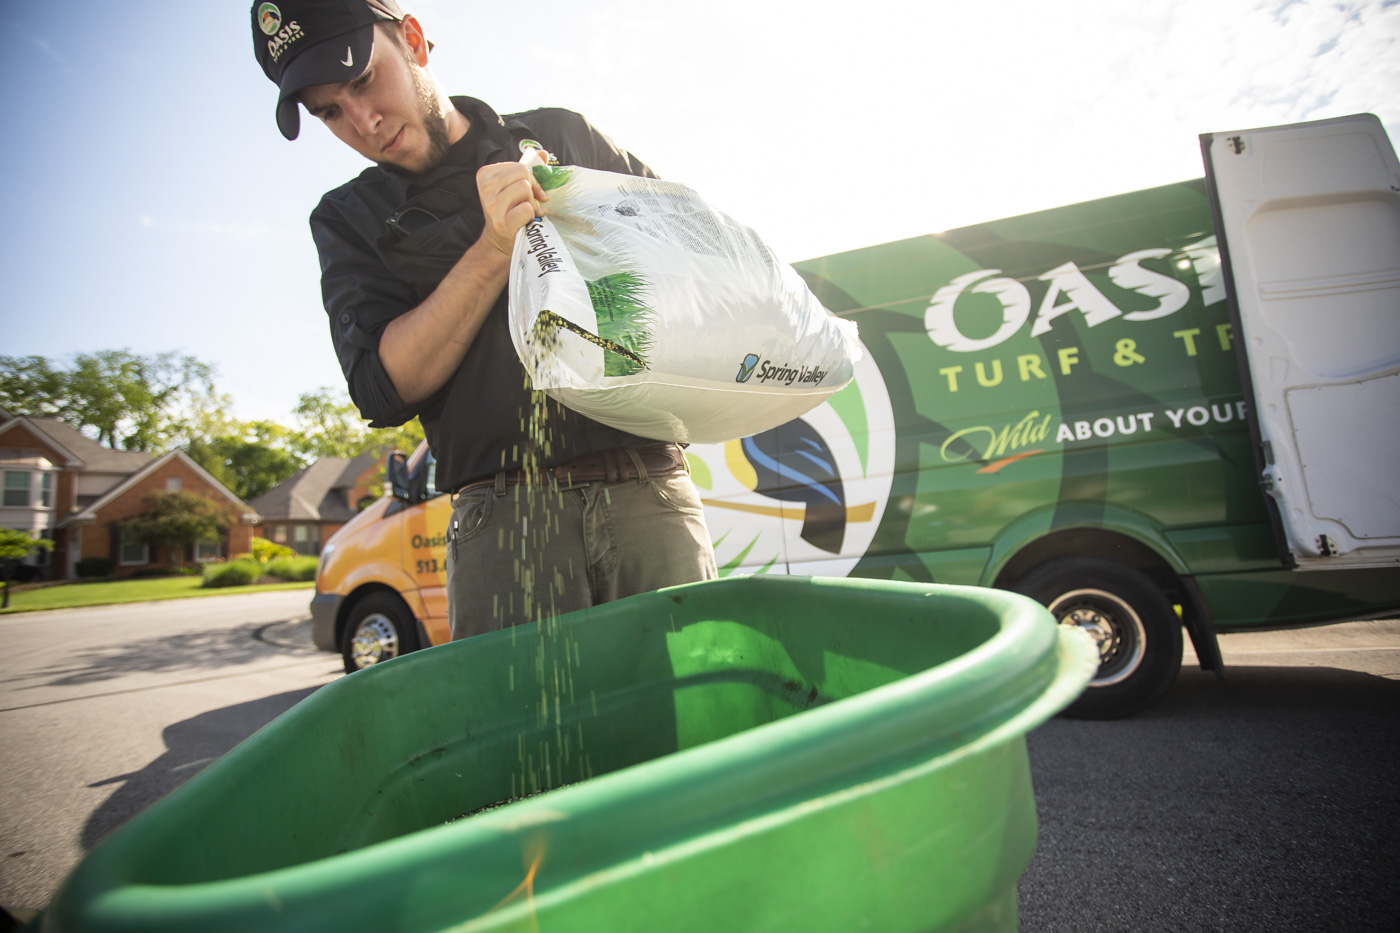 Lawn care technician prepping fertilizer to be applied to a lawn